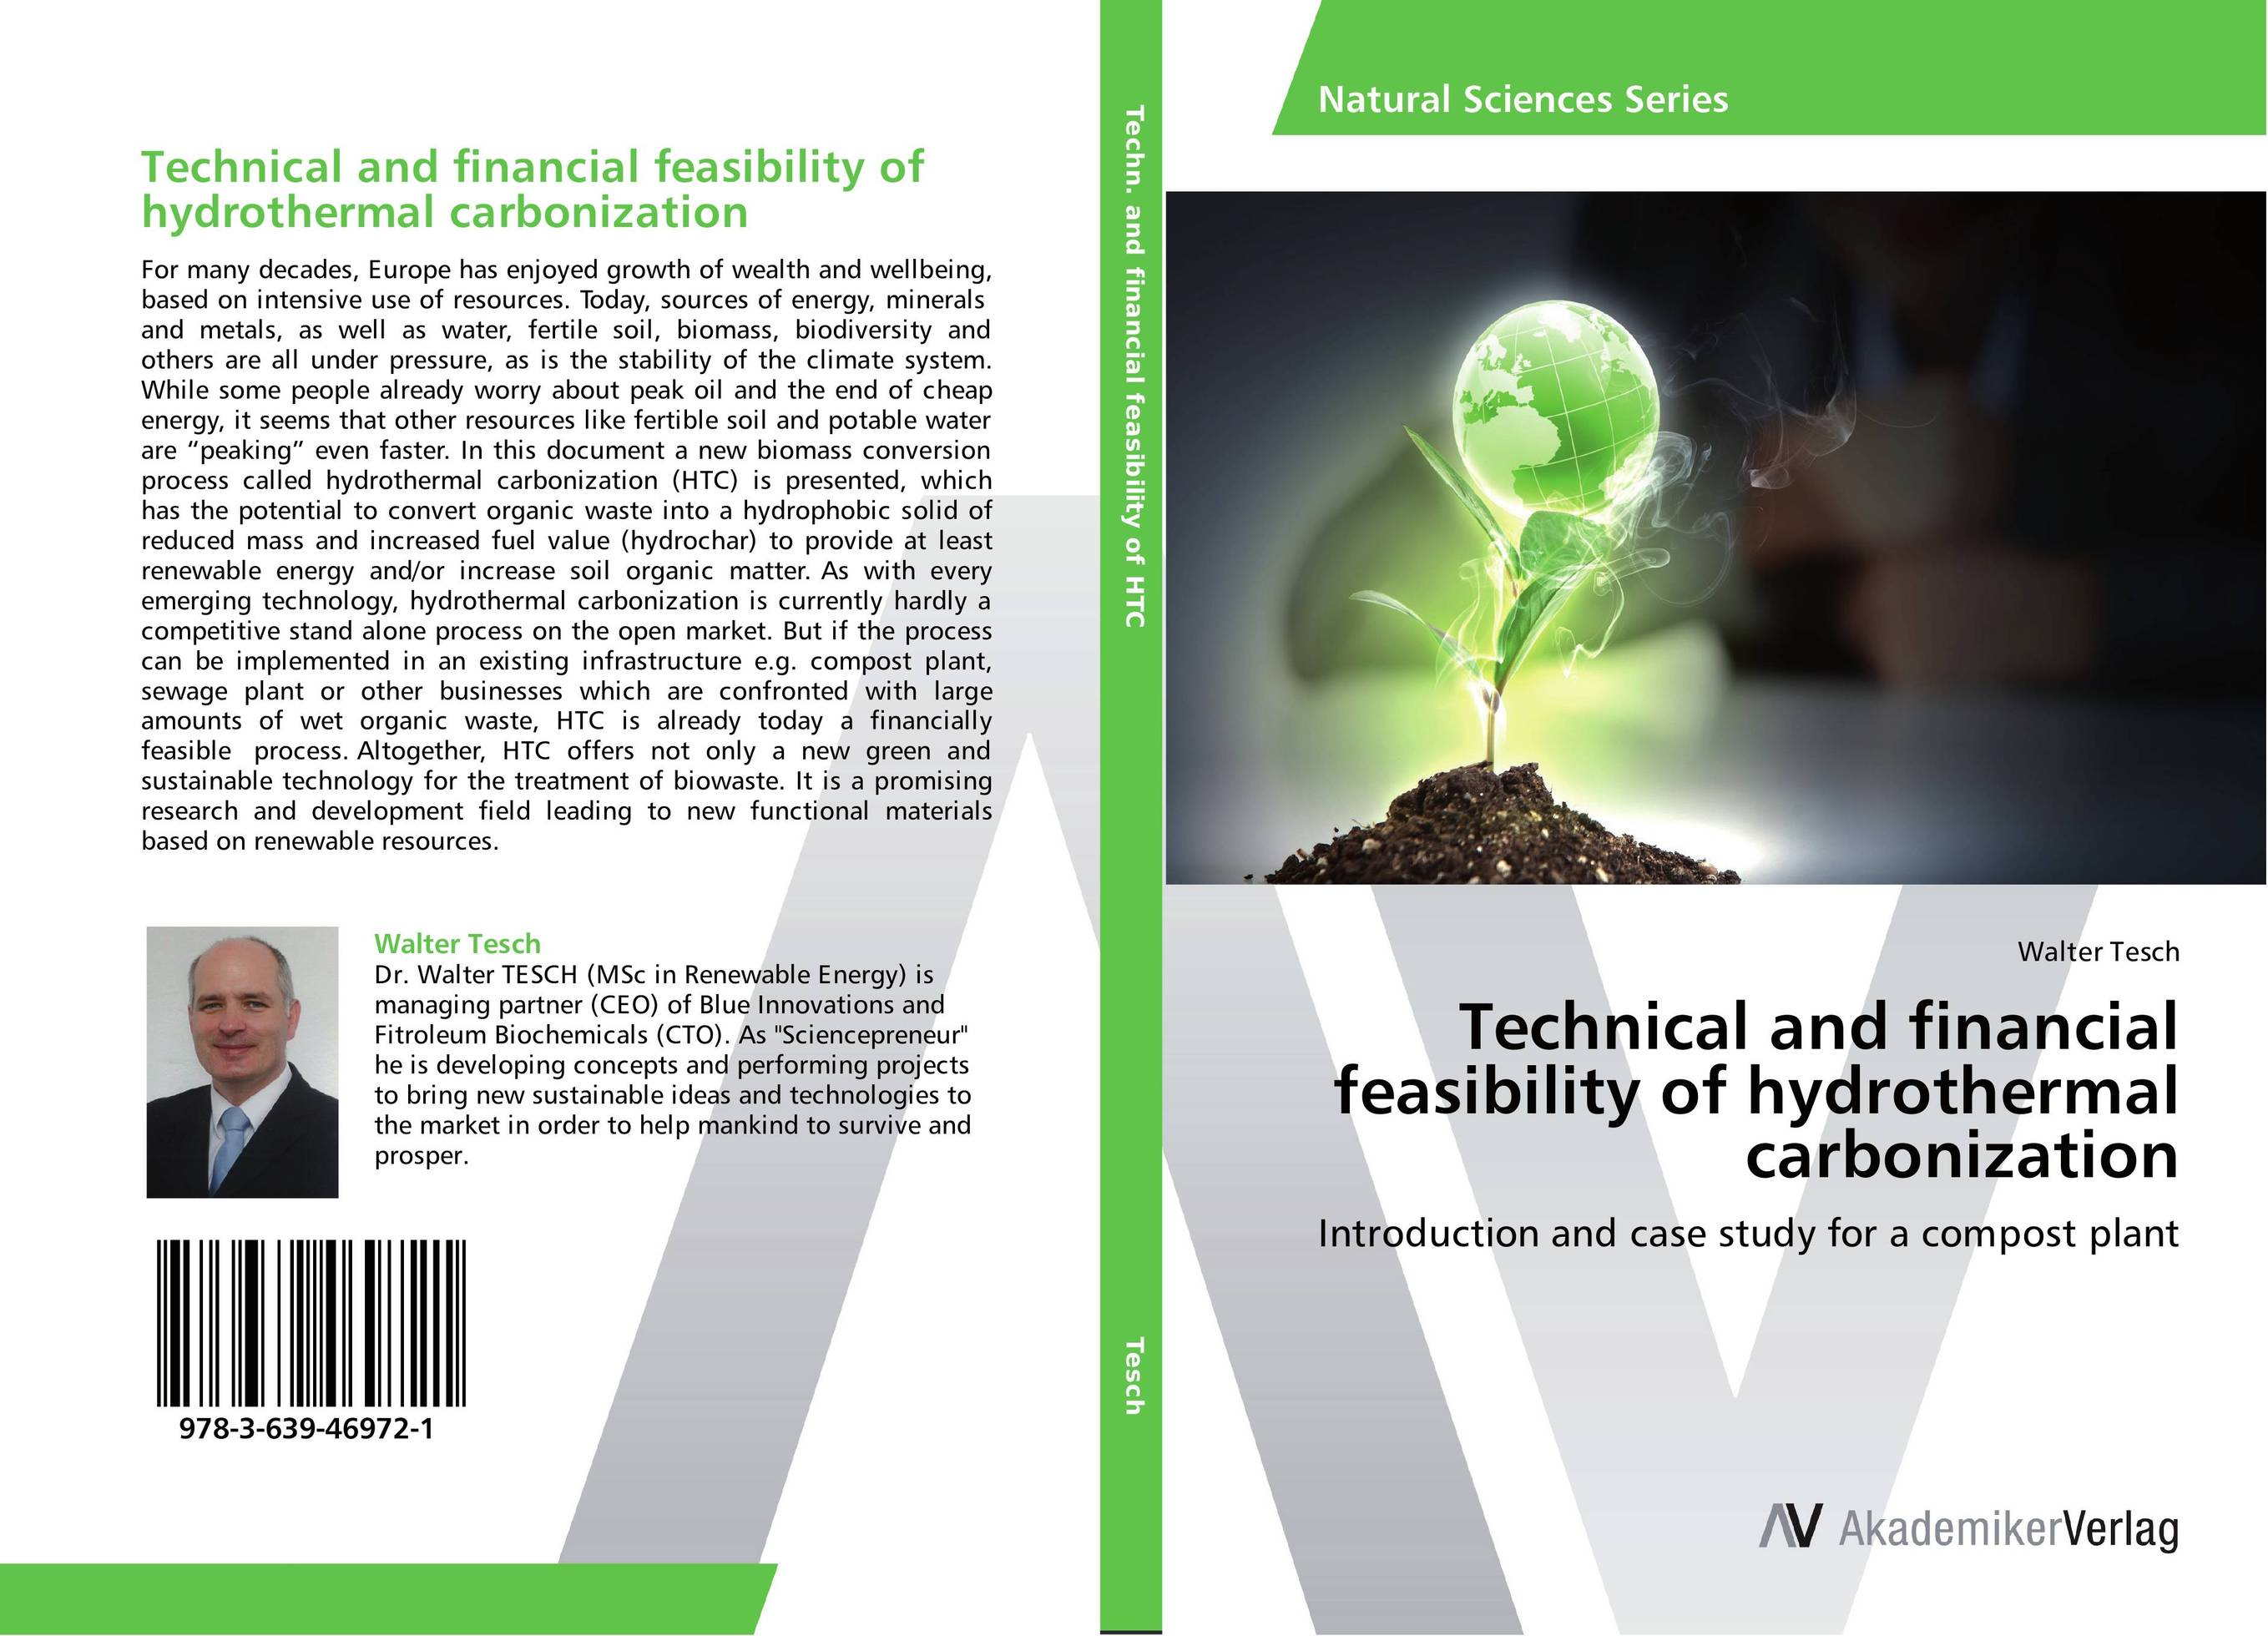 Technical and financial feasibility of hydrothermal carbonization hydrothermal autoclave reactor with teflon chamber hydrothermal synthesis 250ml